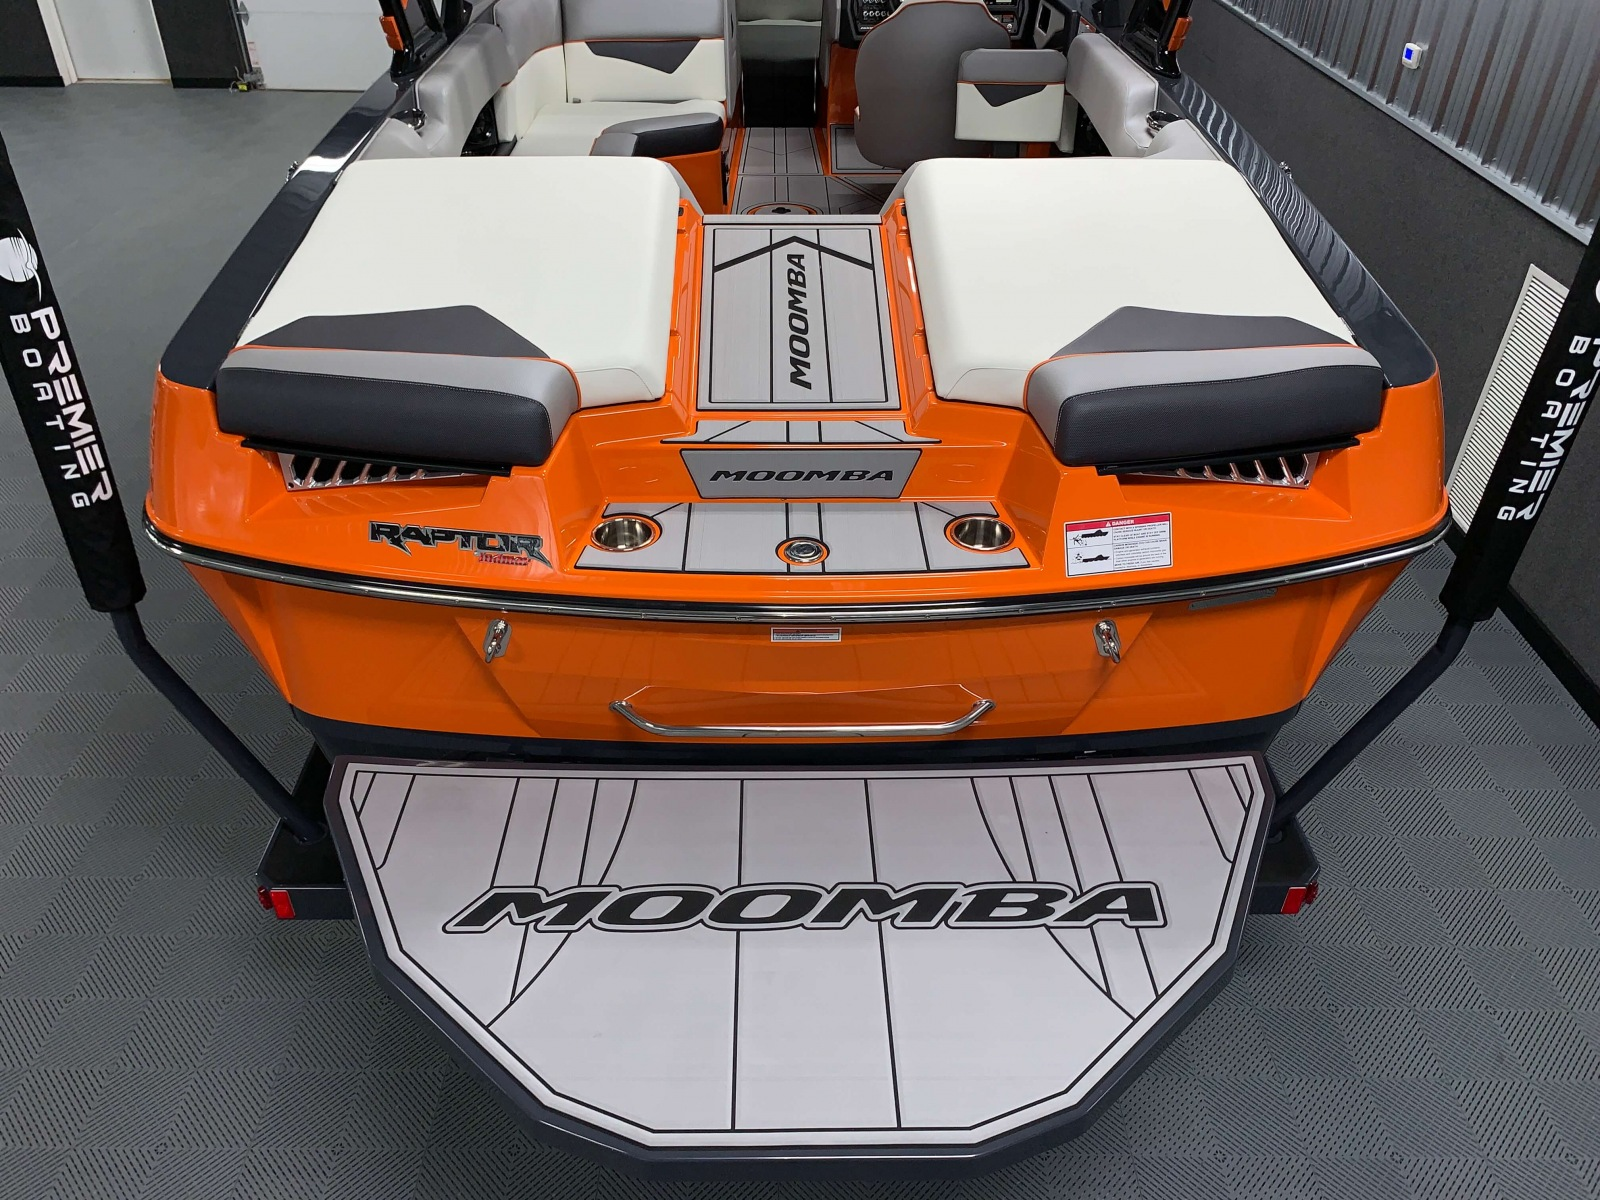 Transom of the 2021 Moomba Kaiyen Wake Boat